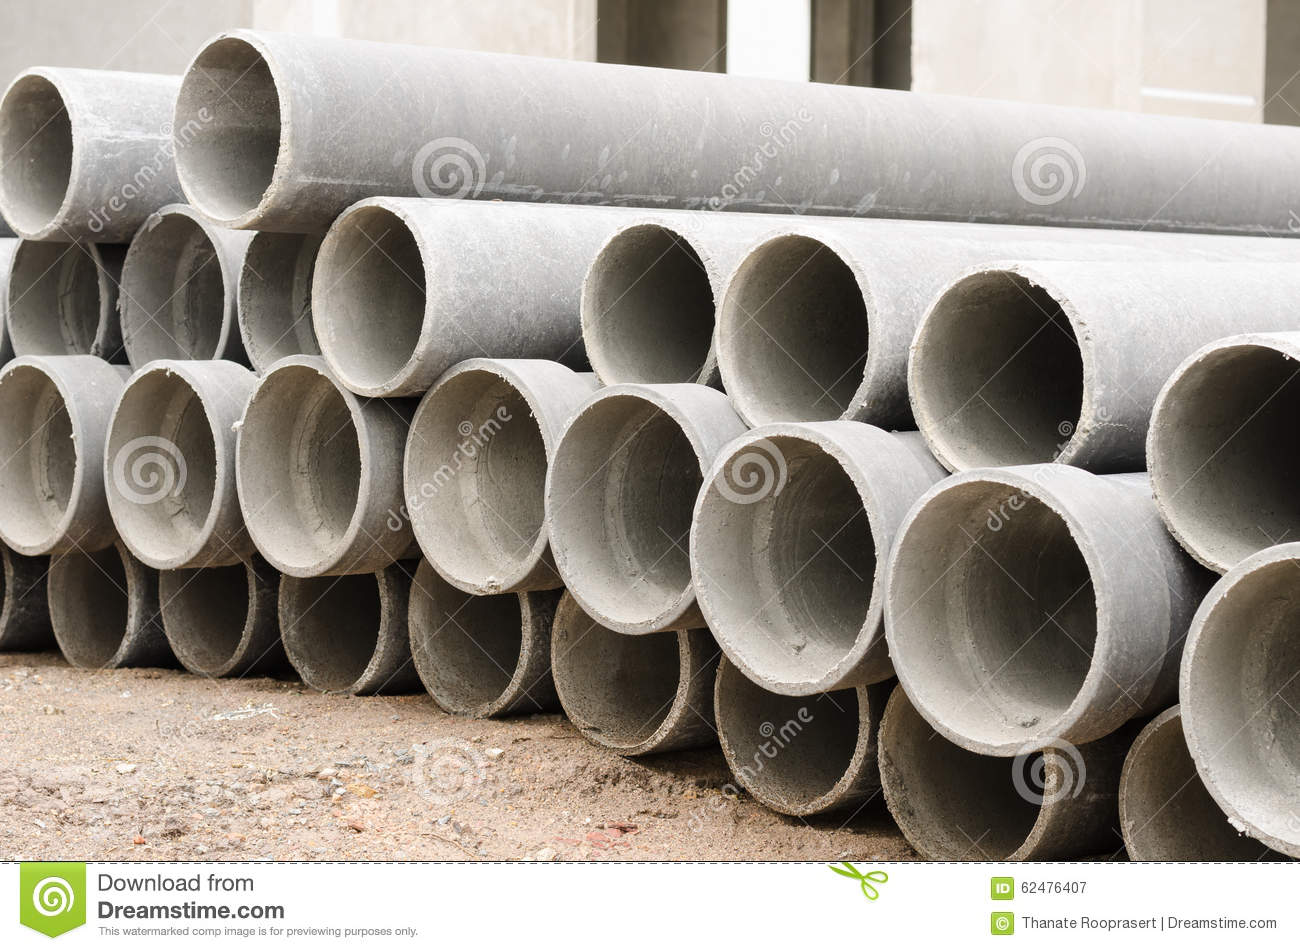 Cement-asbestos pipes: prices and reviews 61